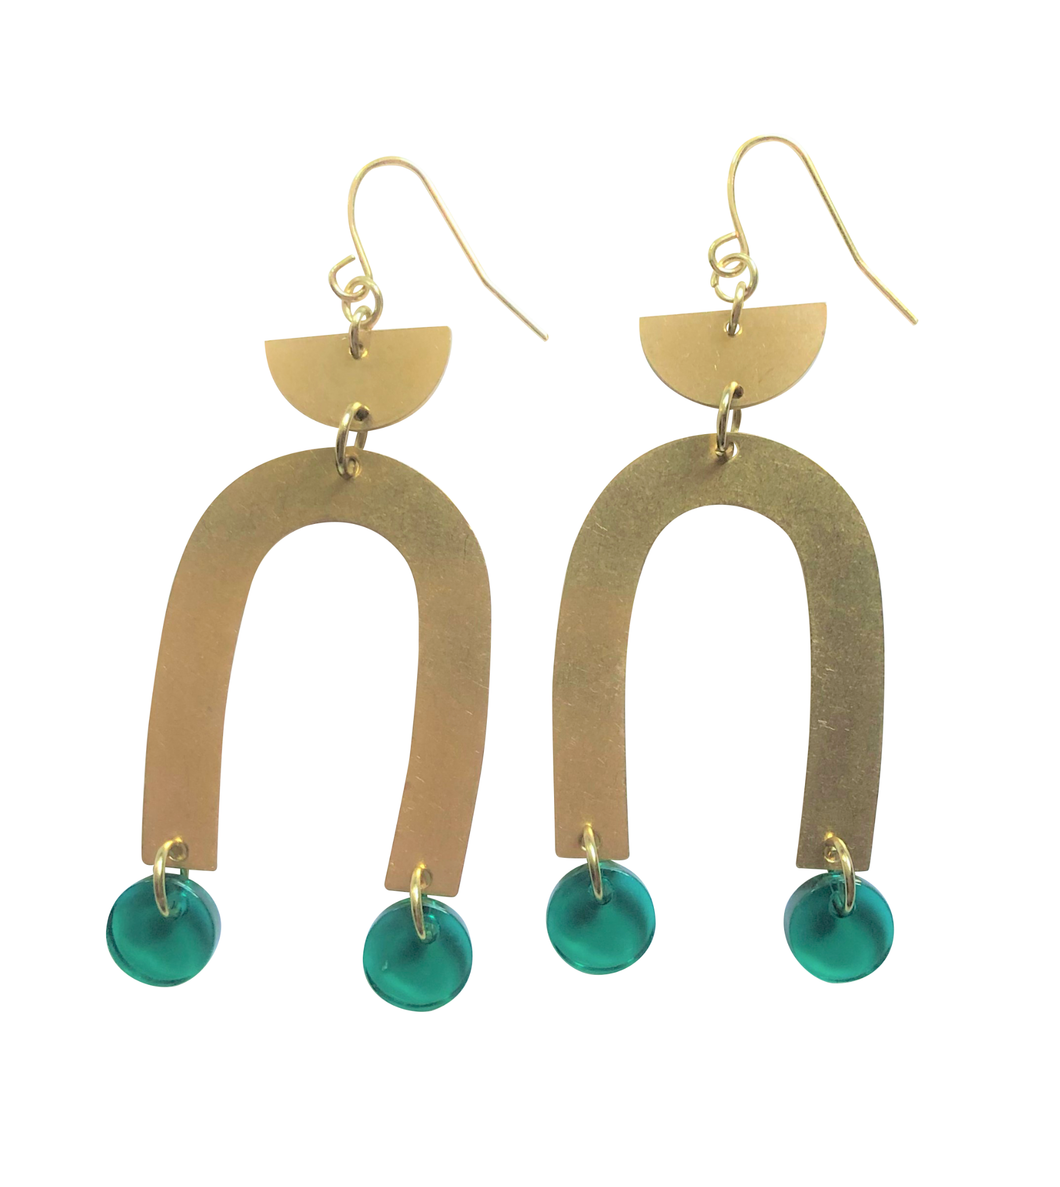 These Pops of Peppermint Green Rainbow, gold brass geometric earrings are fun and will make you feel happy and cheerful, while adding the perfect pop of color to your wardrobe! Our colorful, 70's and 80's inspired earrings are handmade and designed with love in Las Vegas and like totally, make a groovy statement!